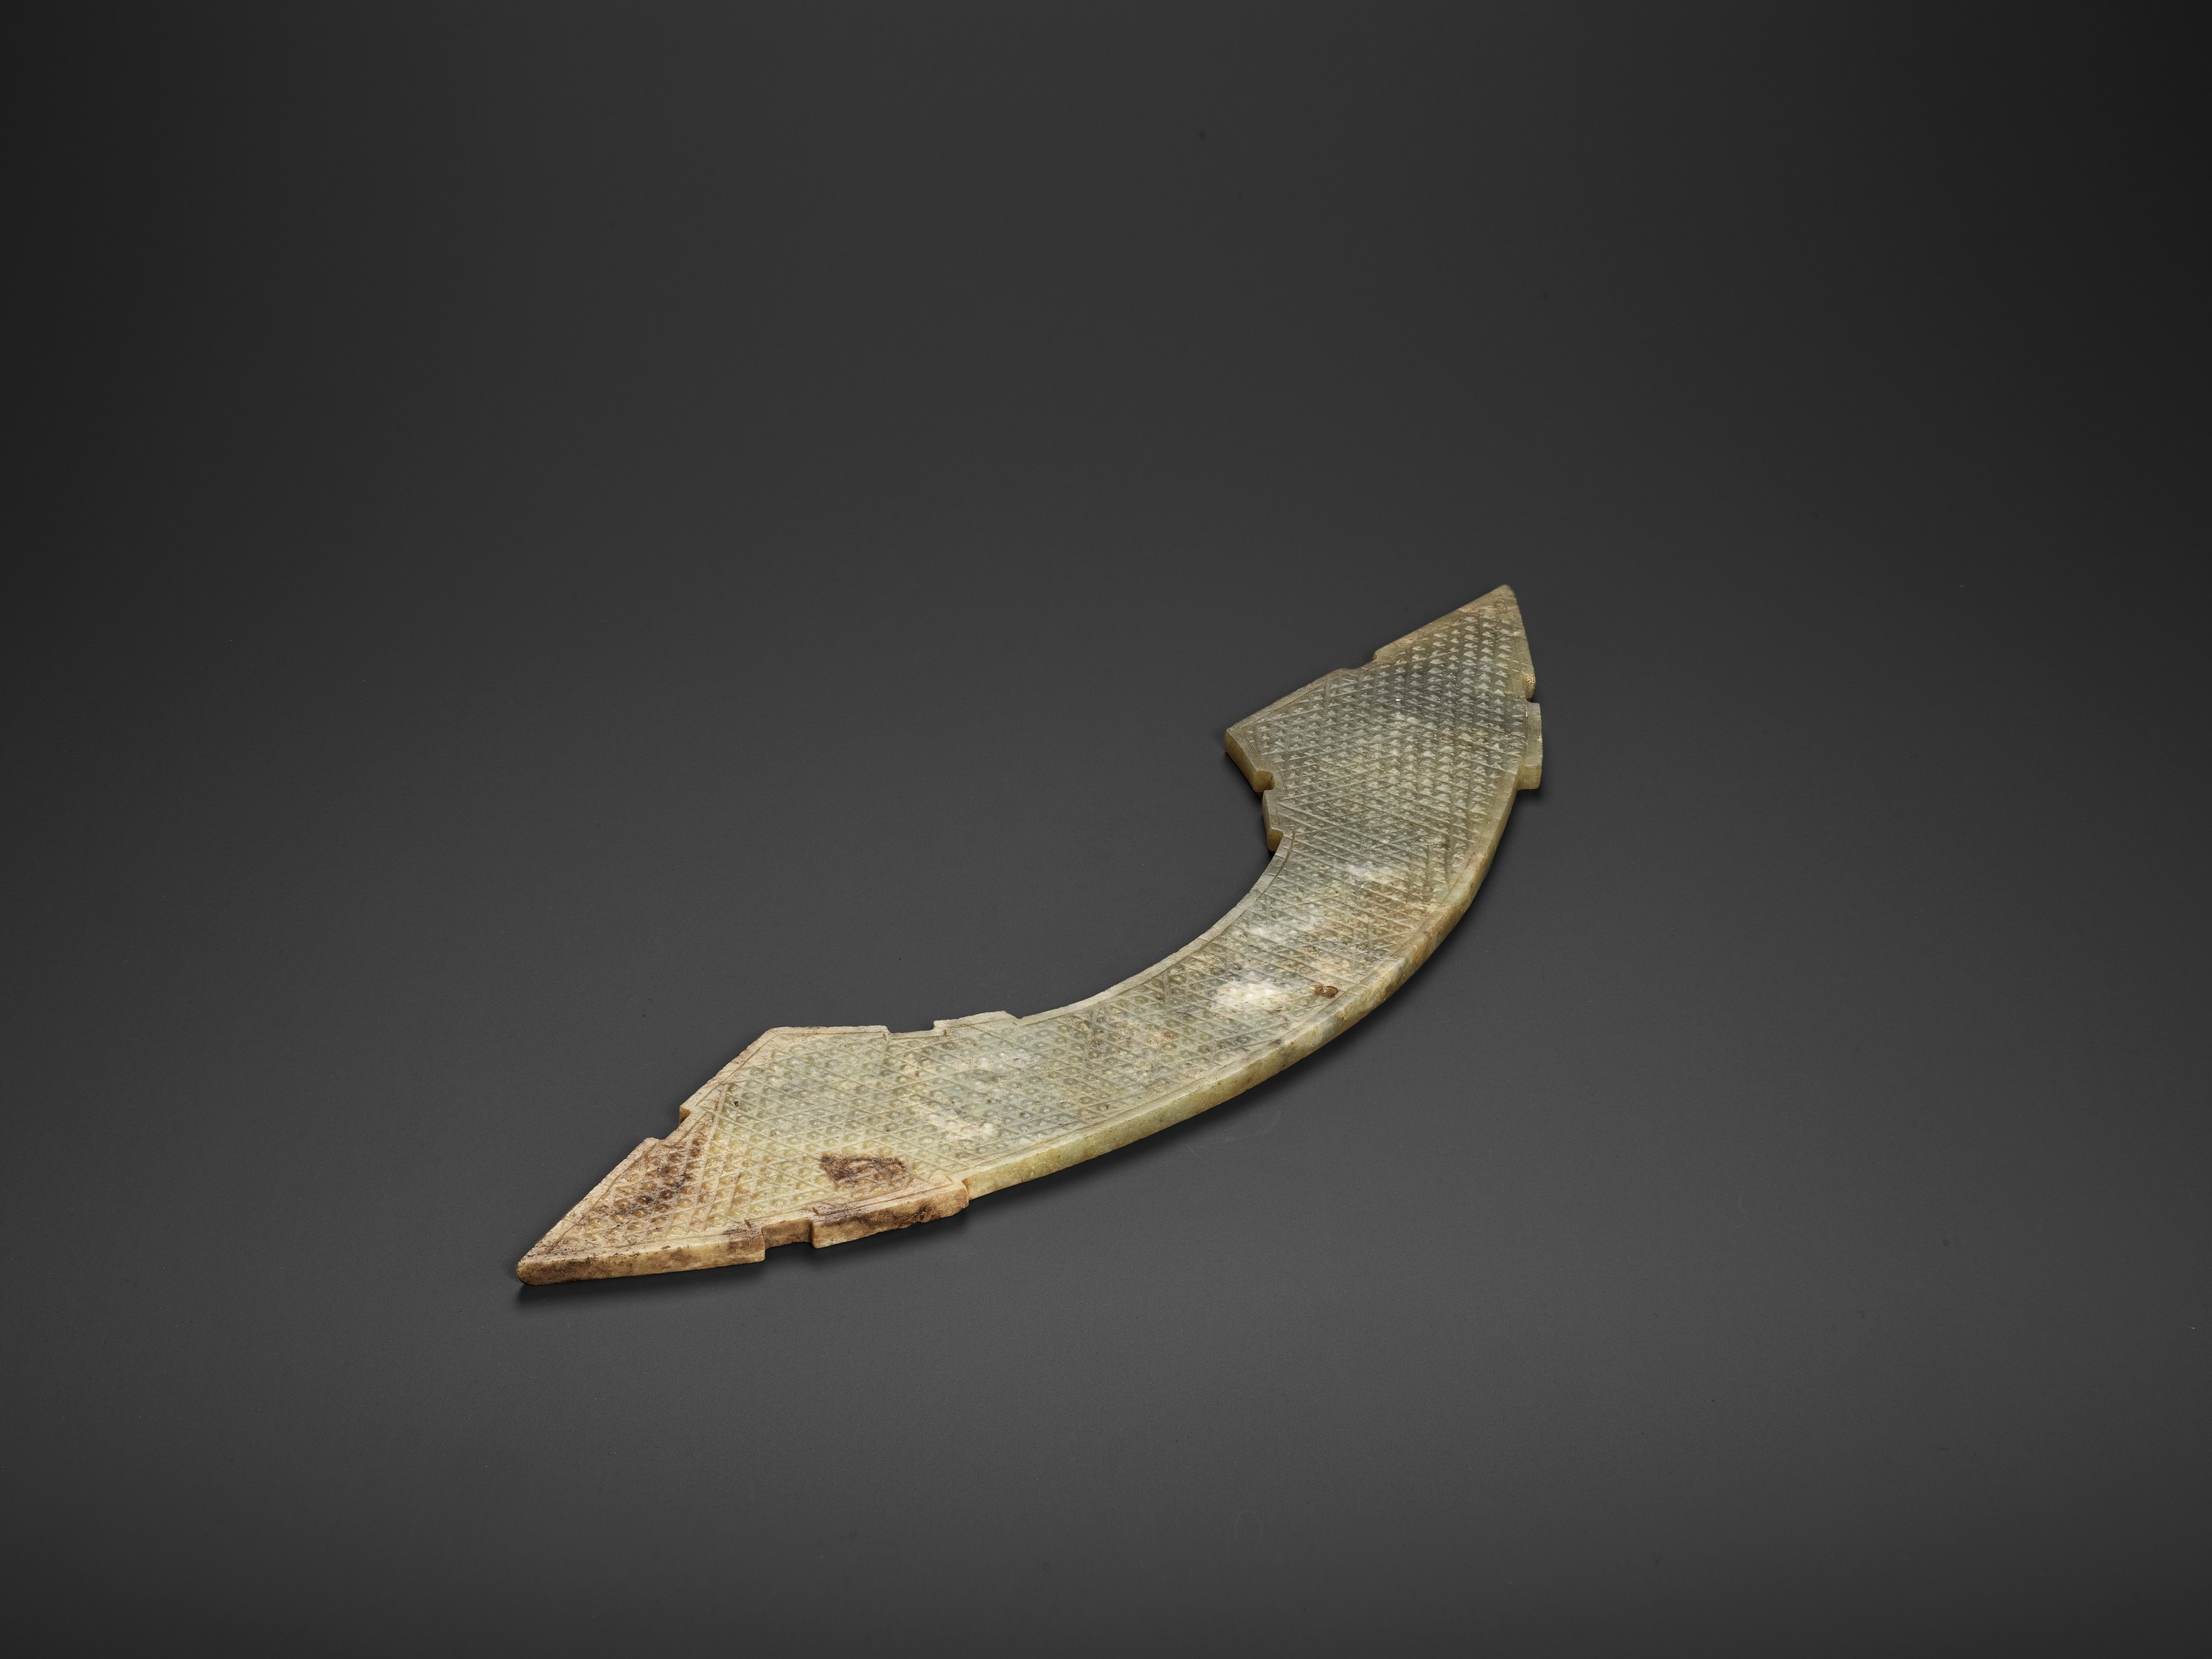 A LARGE PALE GREEN AND RUSSET JADE 'DOUBLE DRAGON' PENDANT, HUANG, EARLY WESTERN HAN - Image 6 of 8